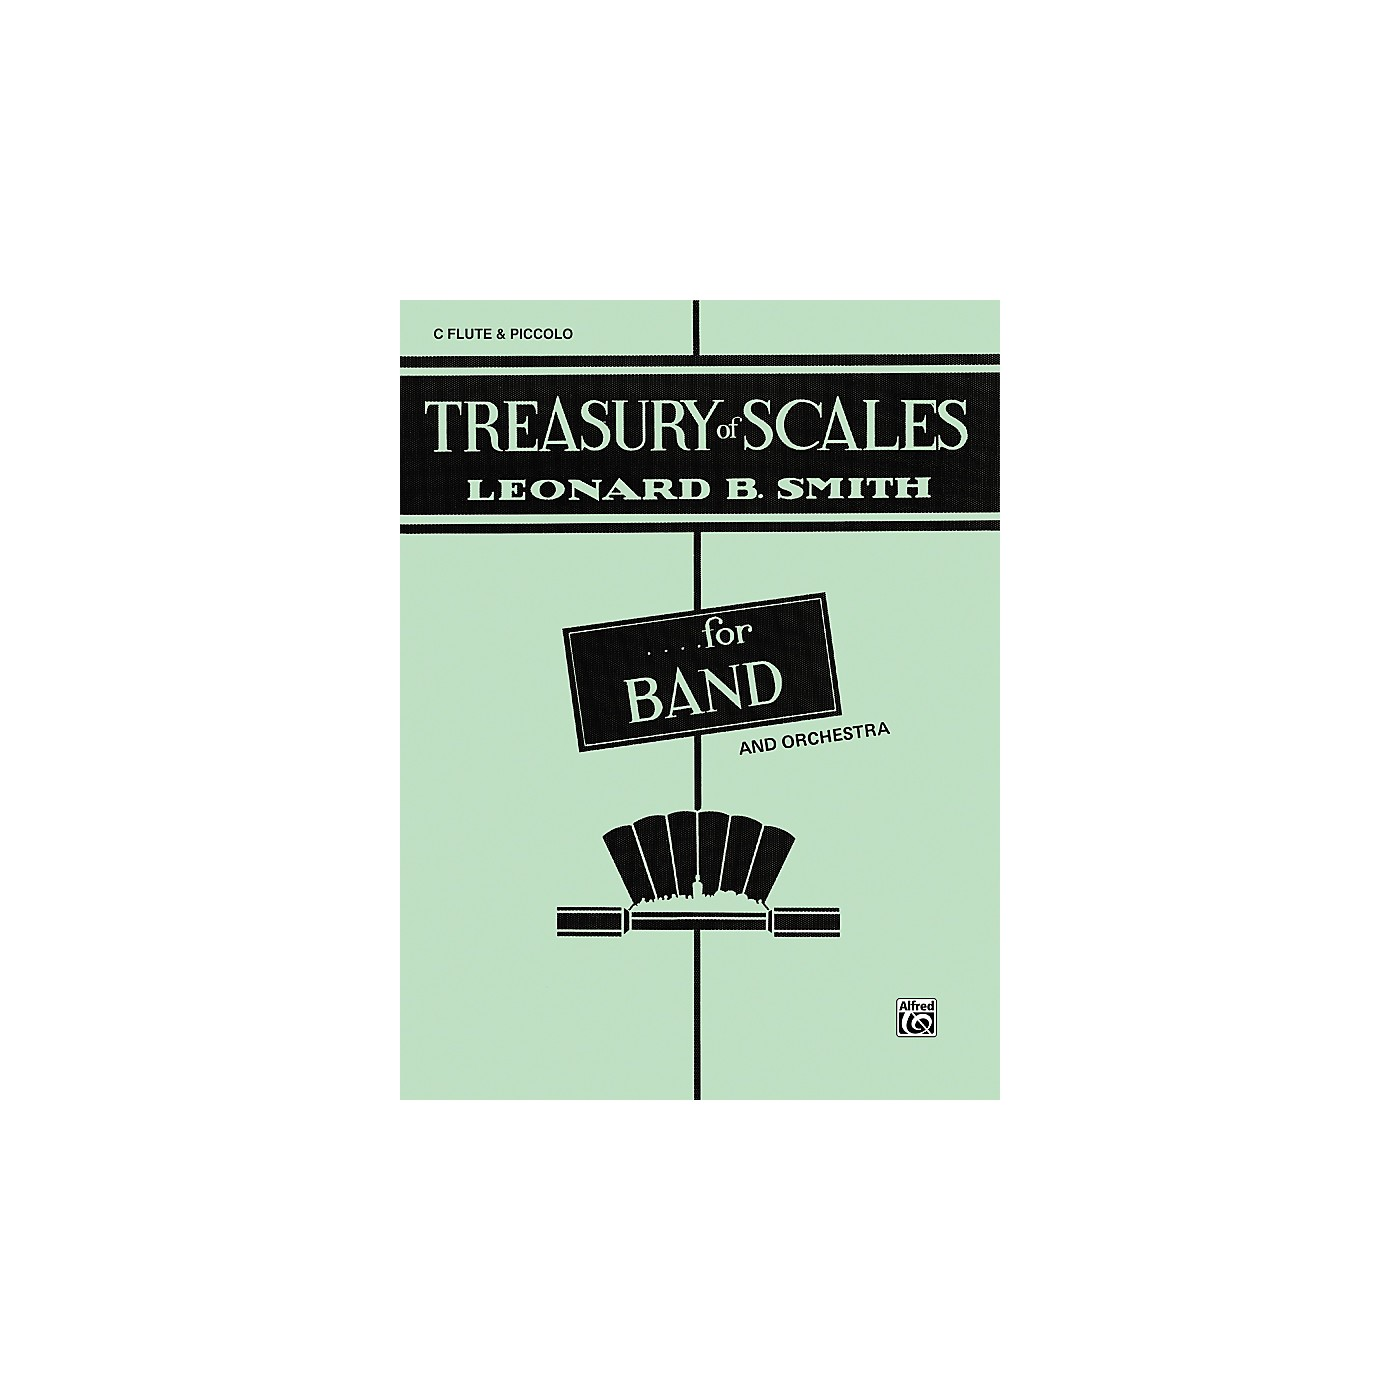 Alfred Treasury of Scales for Band and Orchestra C Flute (Piccolo) thumbnail